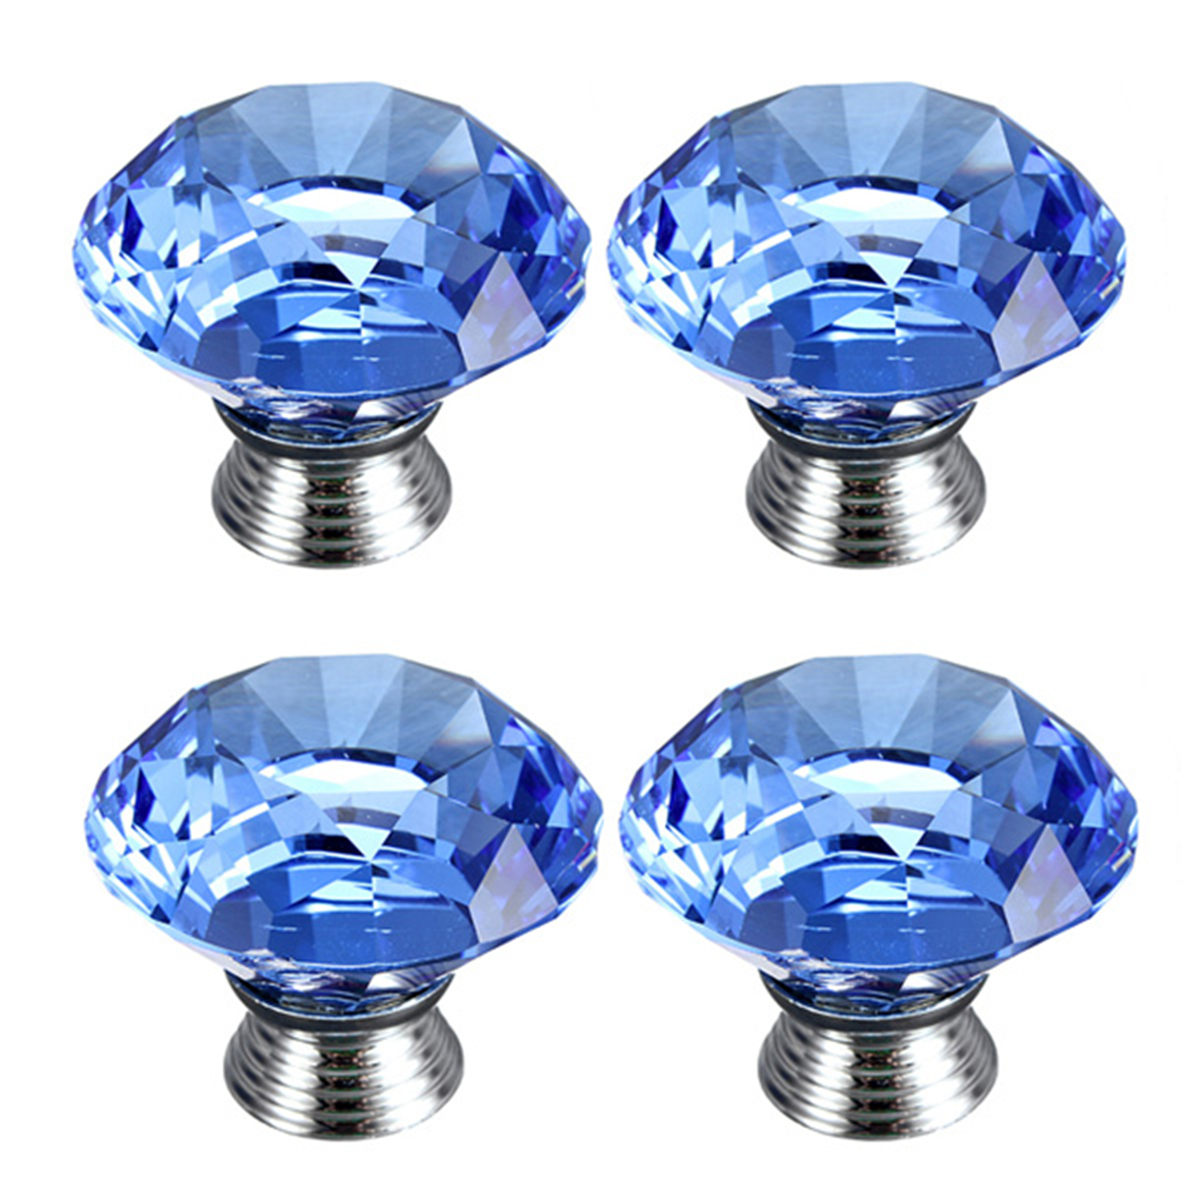 40mm Crystal Glass Door Knobs Kitchen Furniture Drawer Cabinet Cupboard Pull Handle